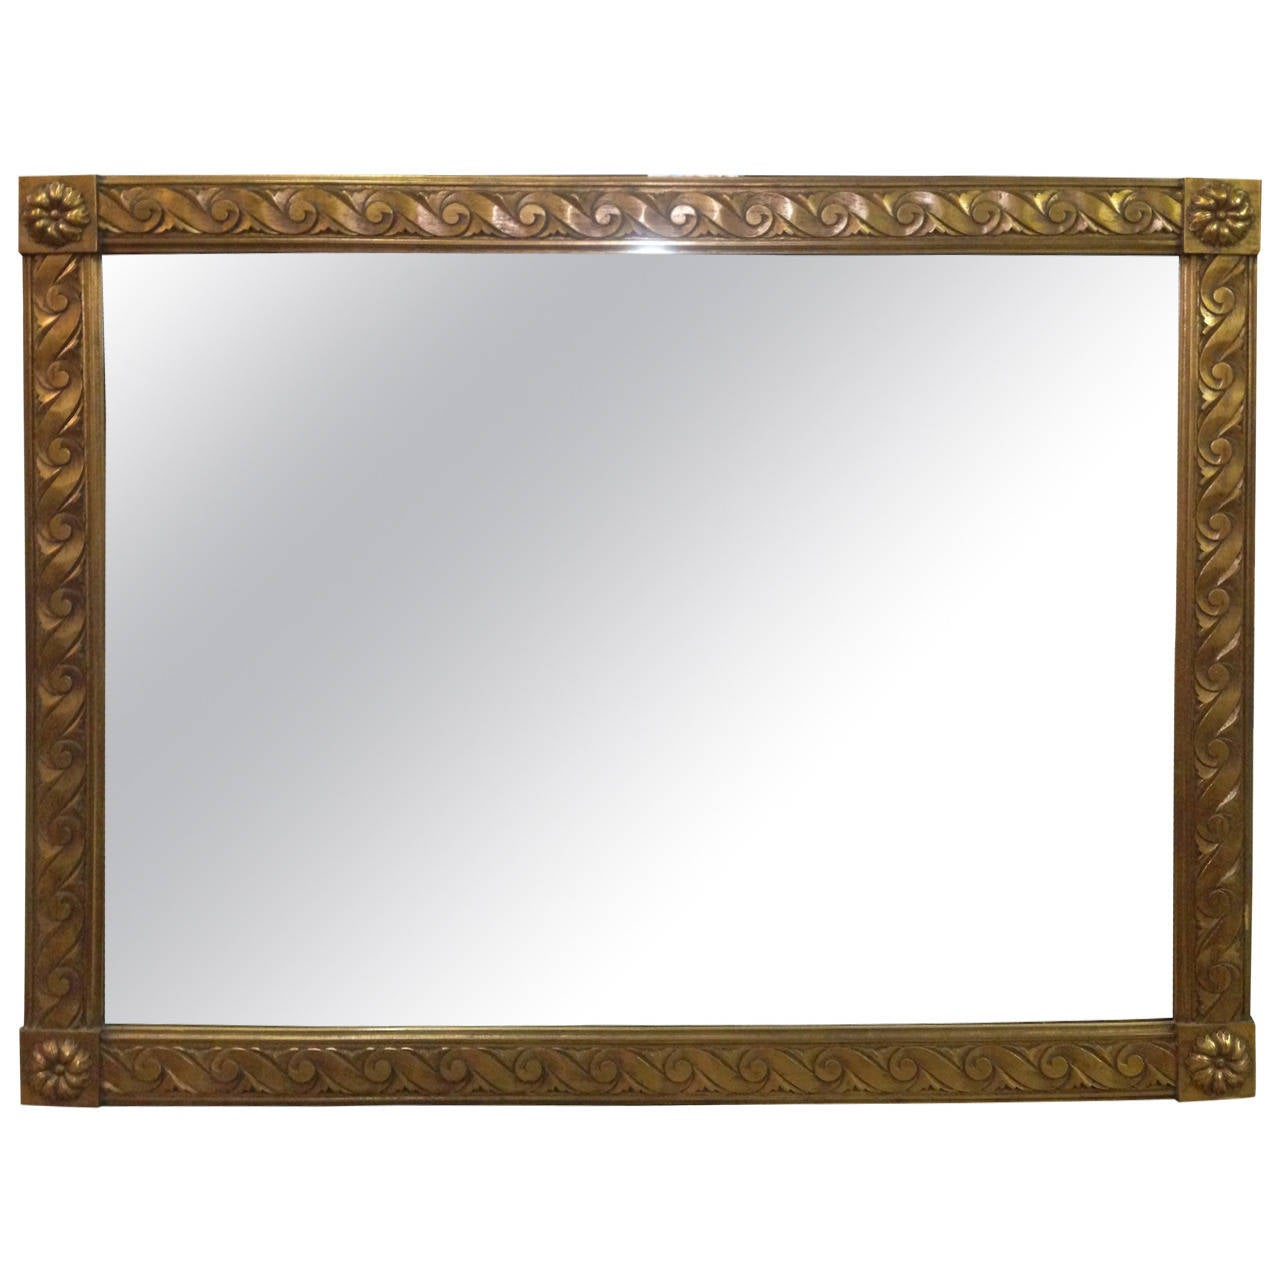 Gold gilt mirror for sale at 1stdibs for What is a gilt mirror